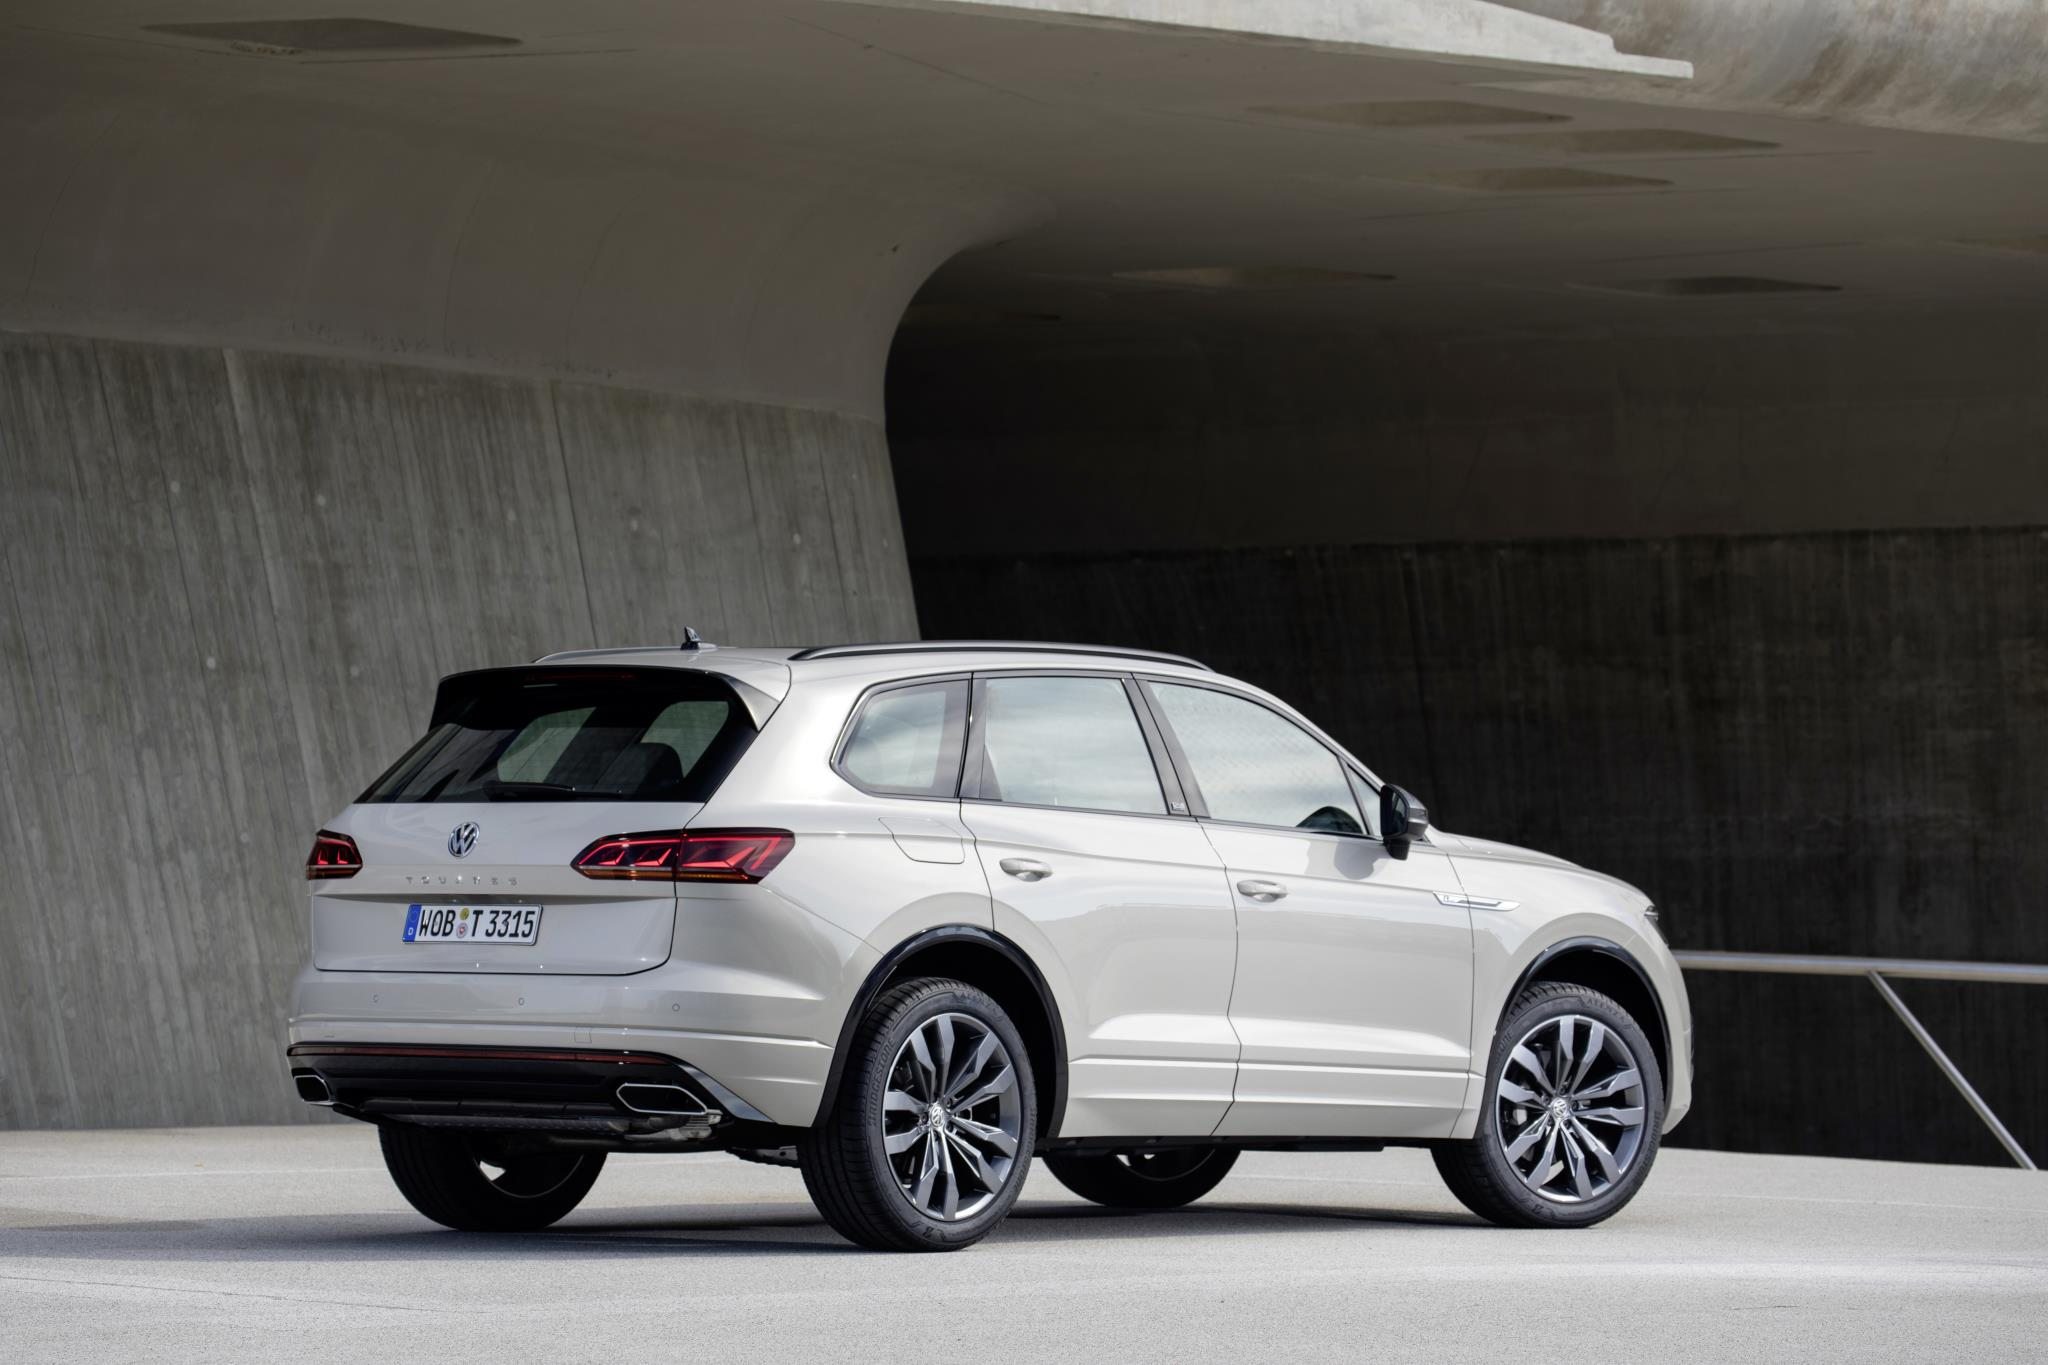 The Touareg has been in production since 2002